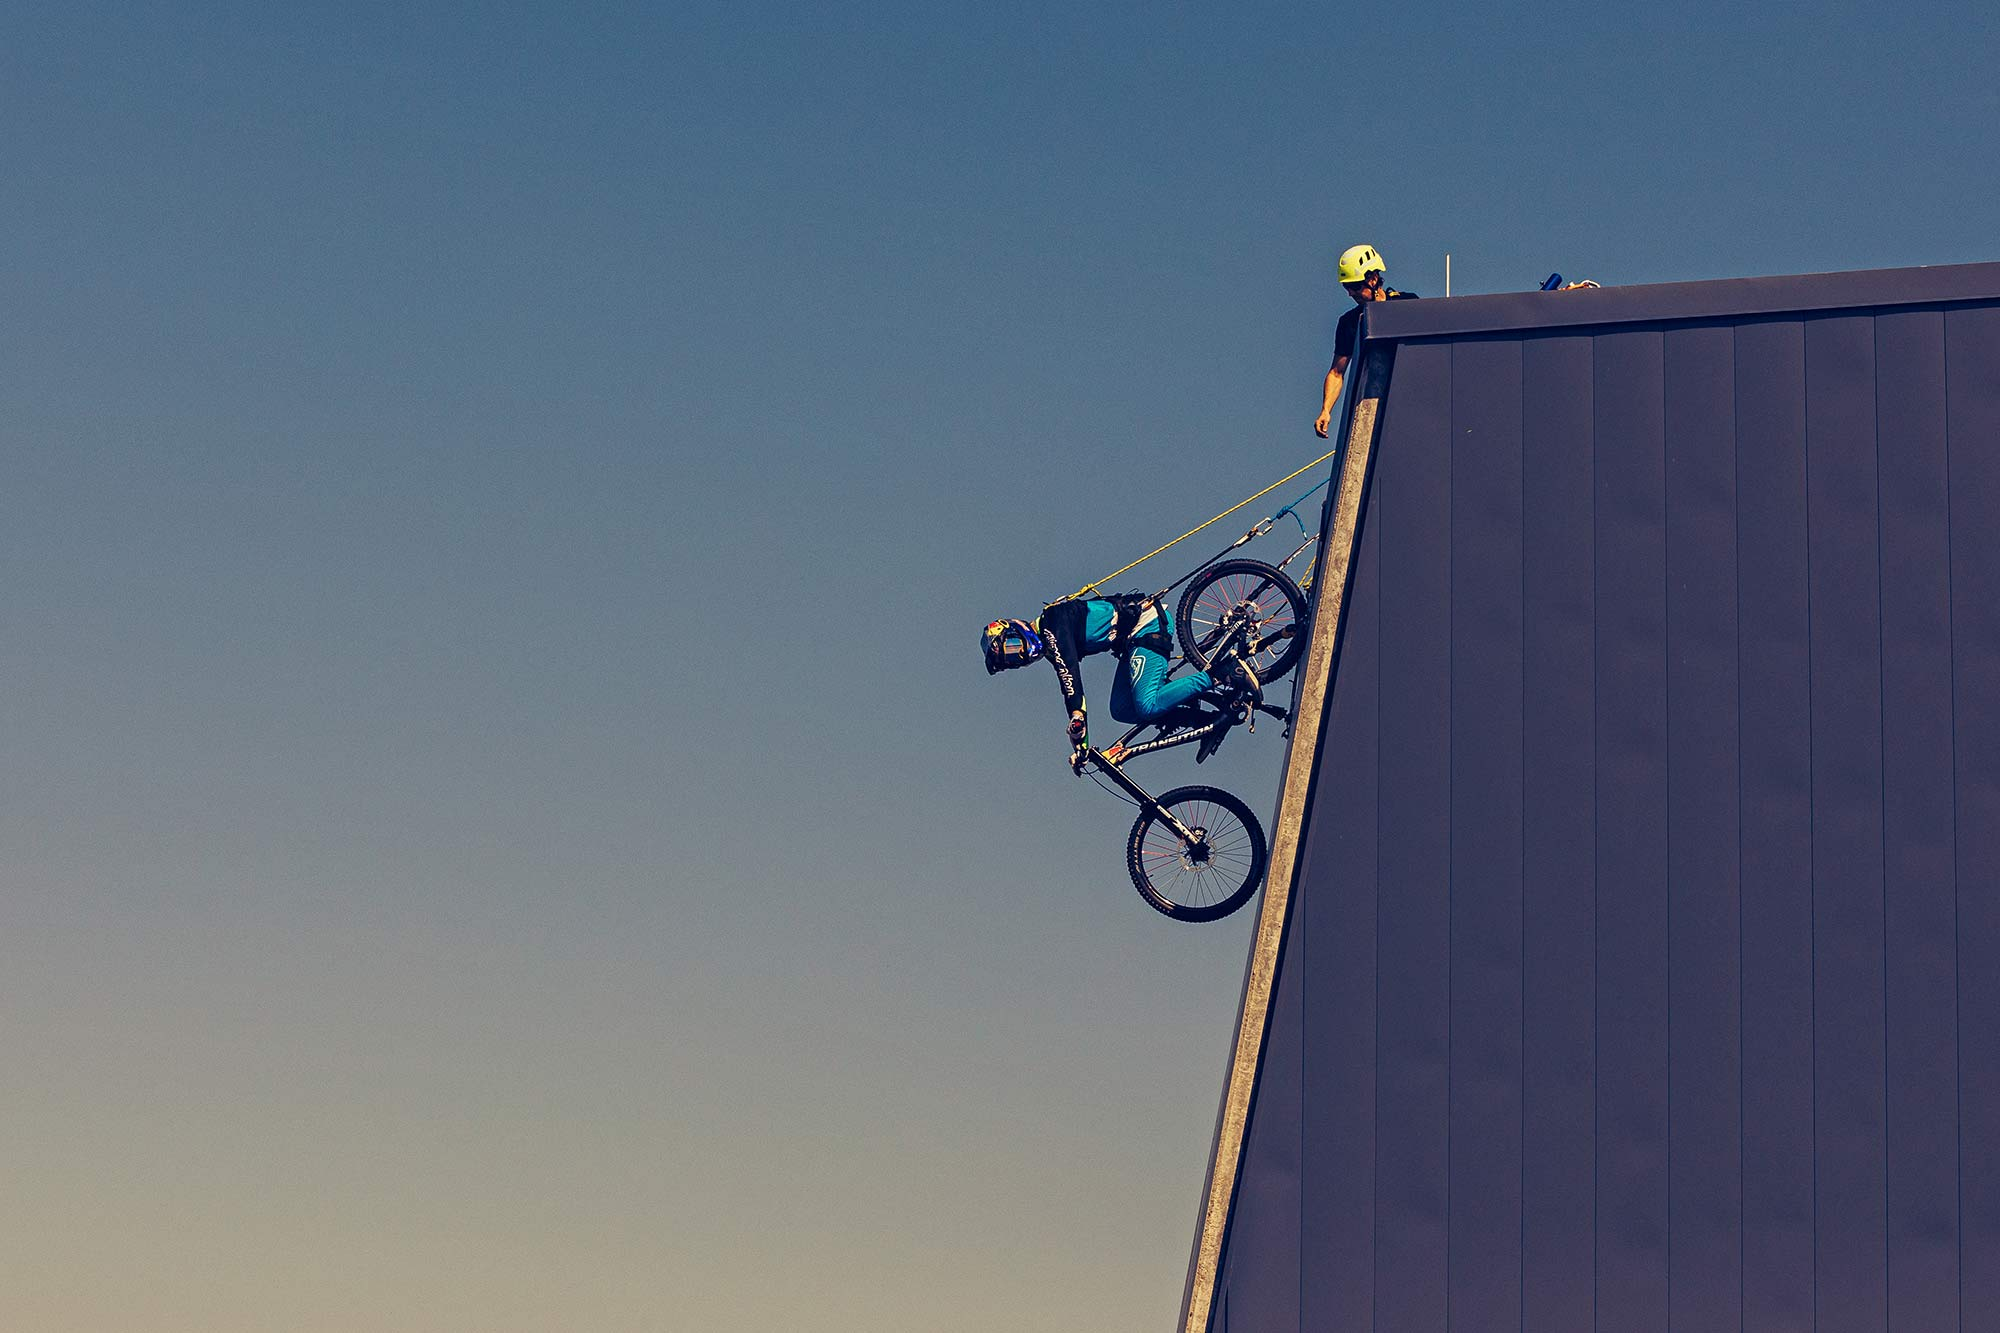 Must Watch: Get amped for Red Bull Rampage by dropping off a 4-story building thumbnail